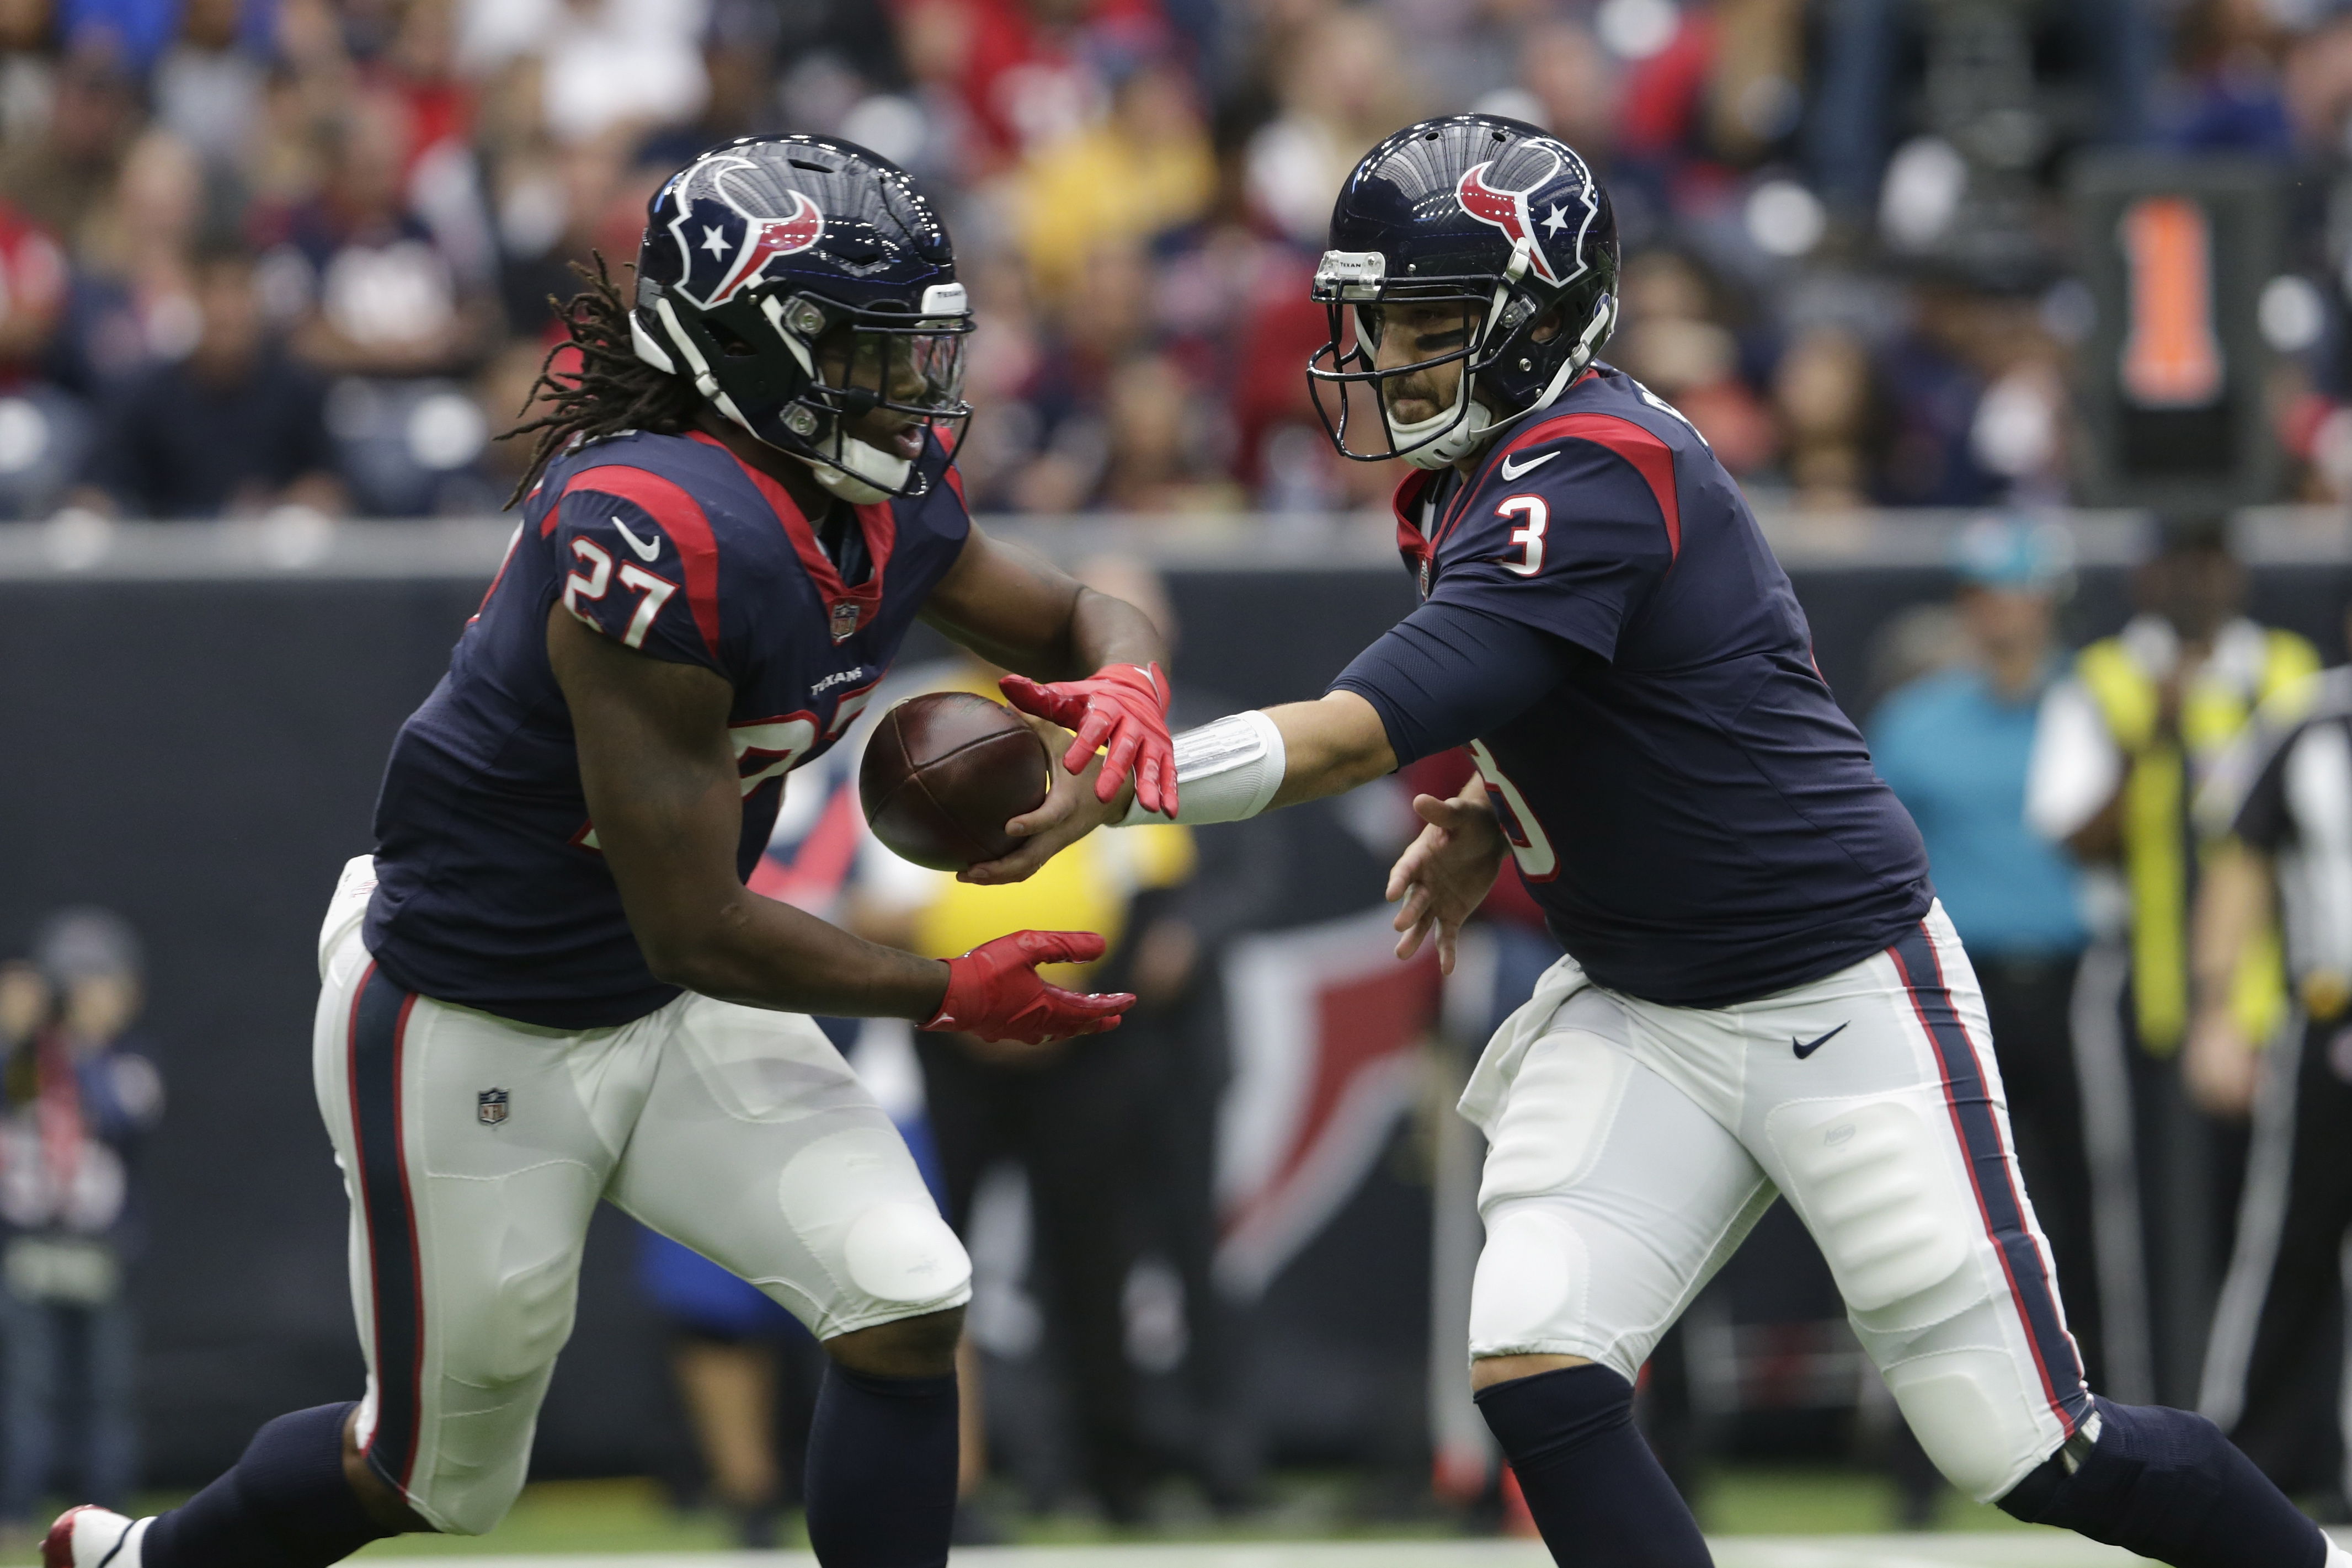 HOUSTON, TX - NOVEMBER 19:  Tom Savage #3 of the Houston Texans hands the ball to D'Onta Foreman #27  in the first quarter against the Arizona Cardinals at NRG Stadium on November 19, 2017 in Houston, Texas.  (Photo by Tim Warner/Getty Images)